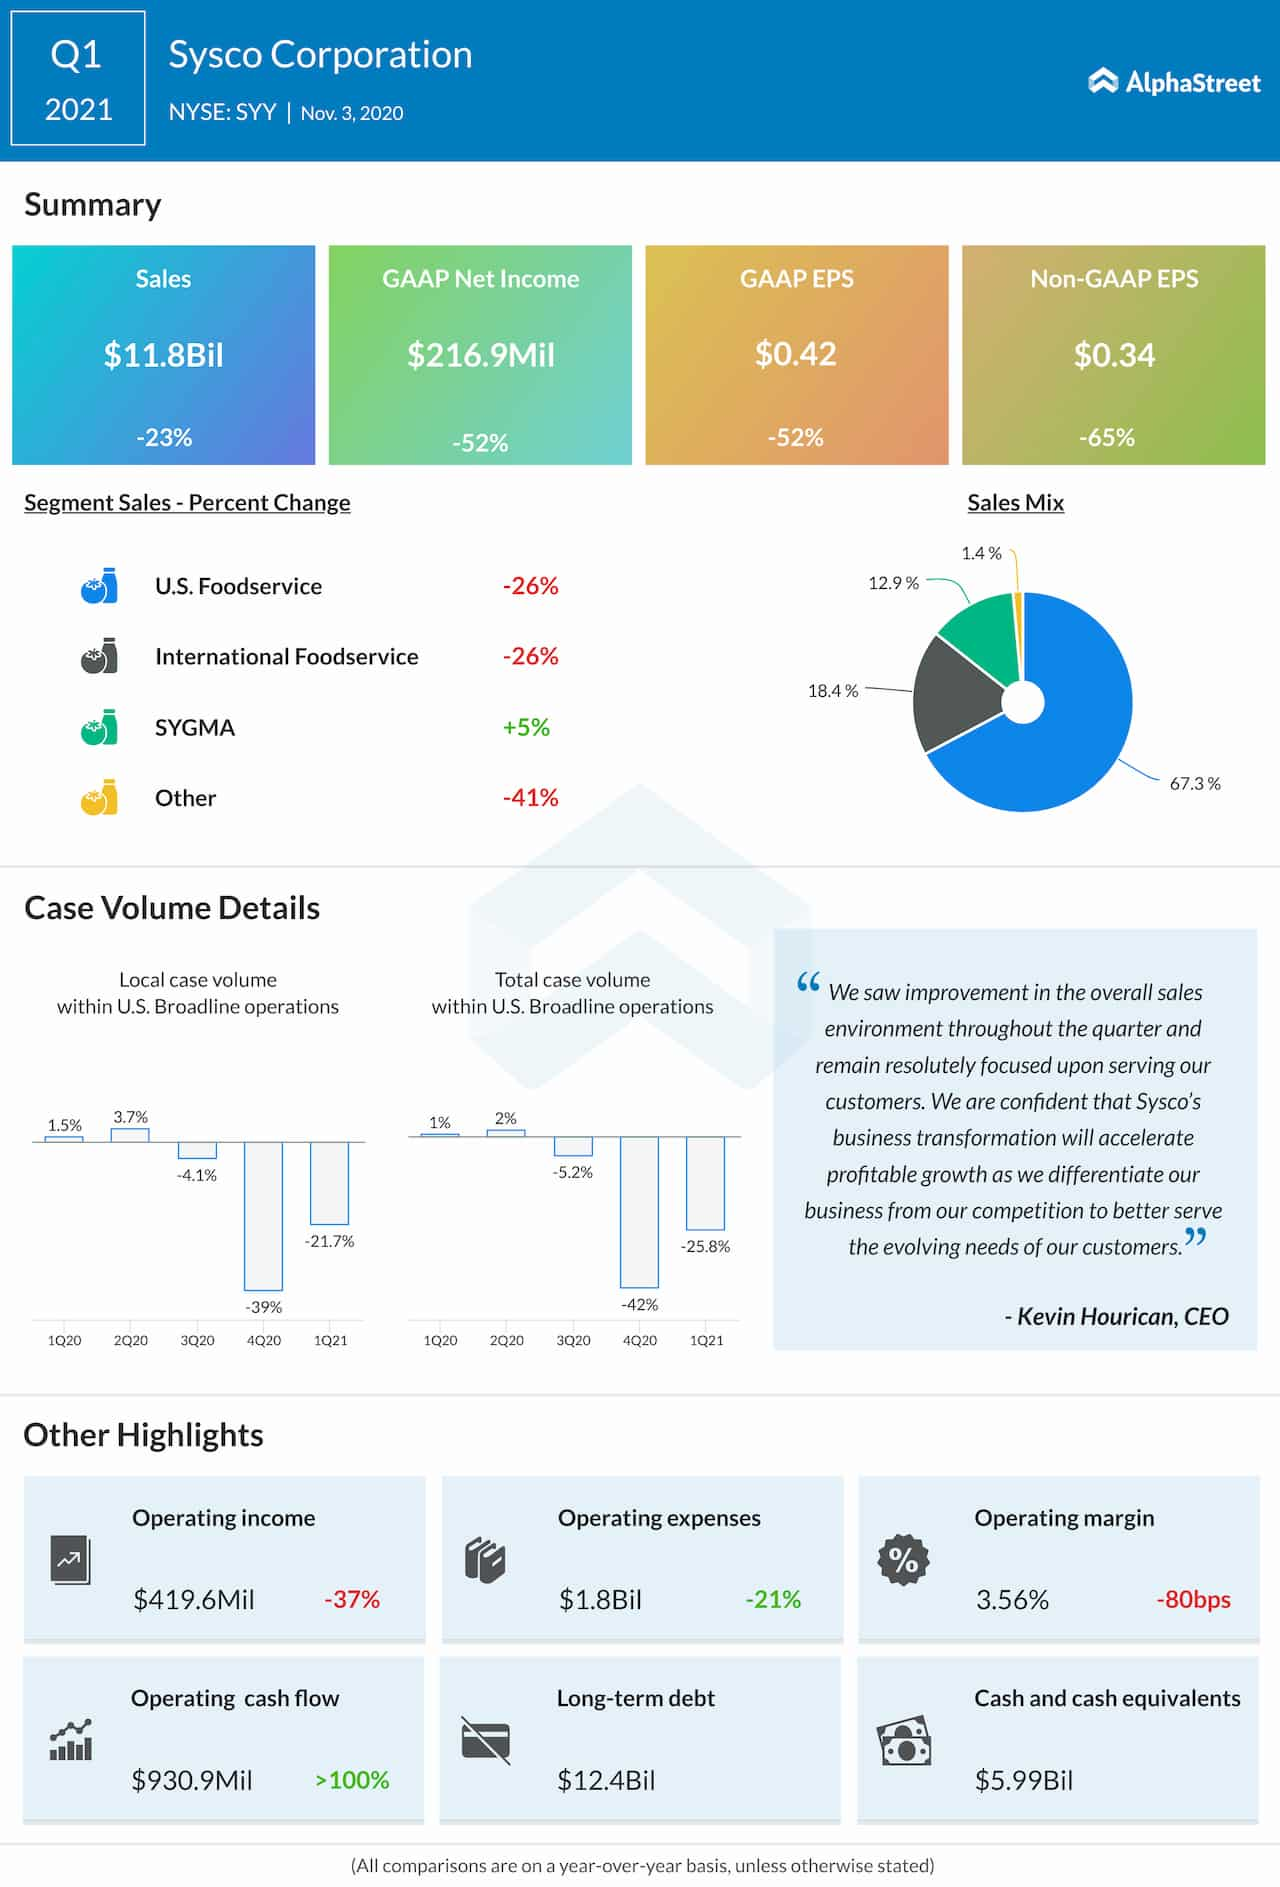 Sysco Corp Q1 2021 earnings infographic